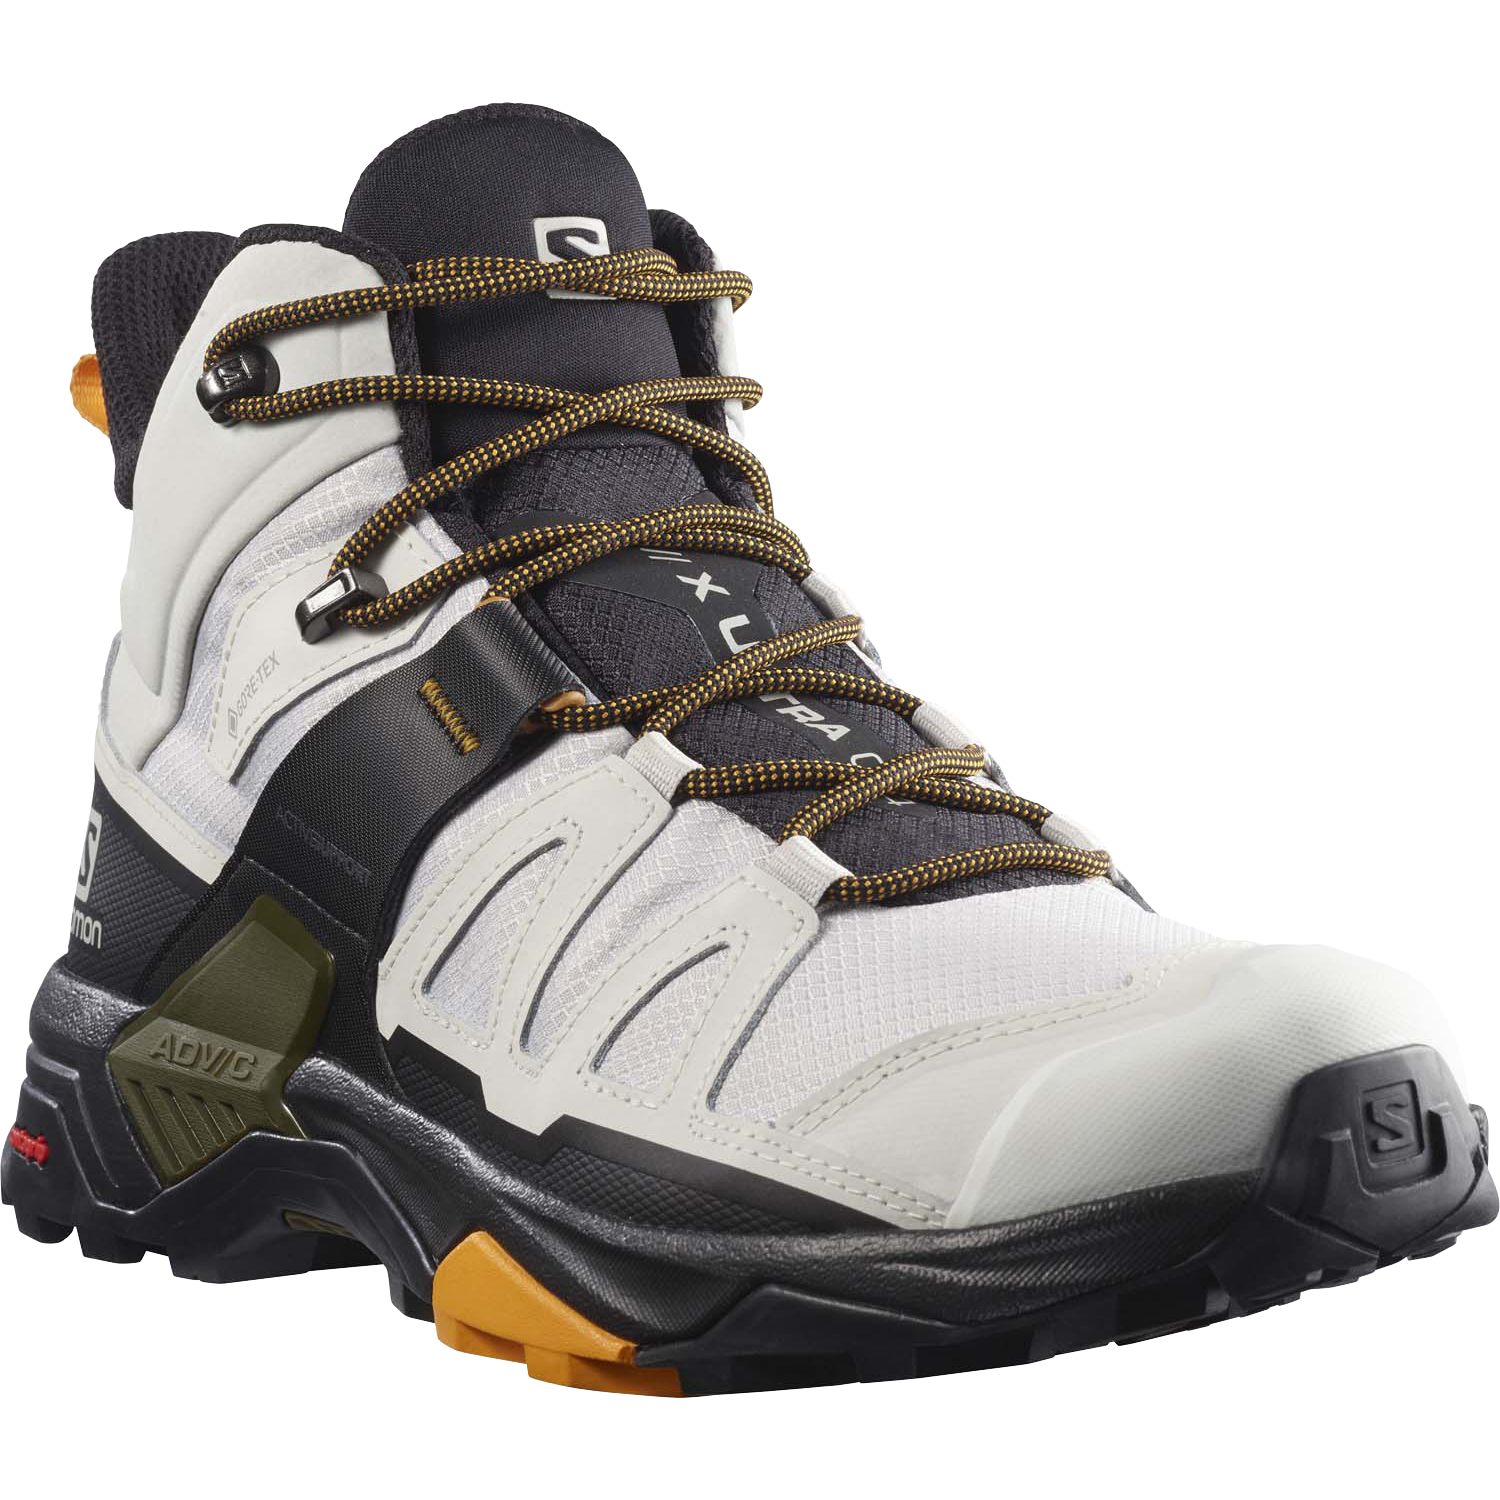 Salomon X Ultra 4 Mid GTX - Lunar Rock Magnet But